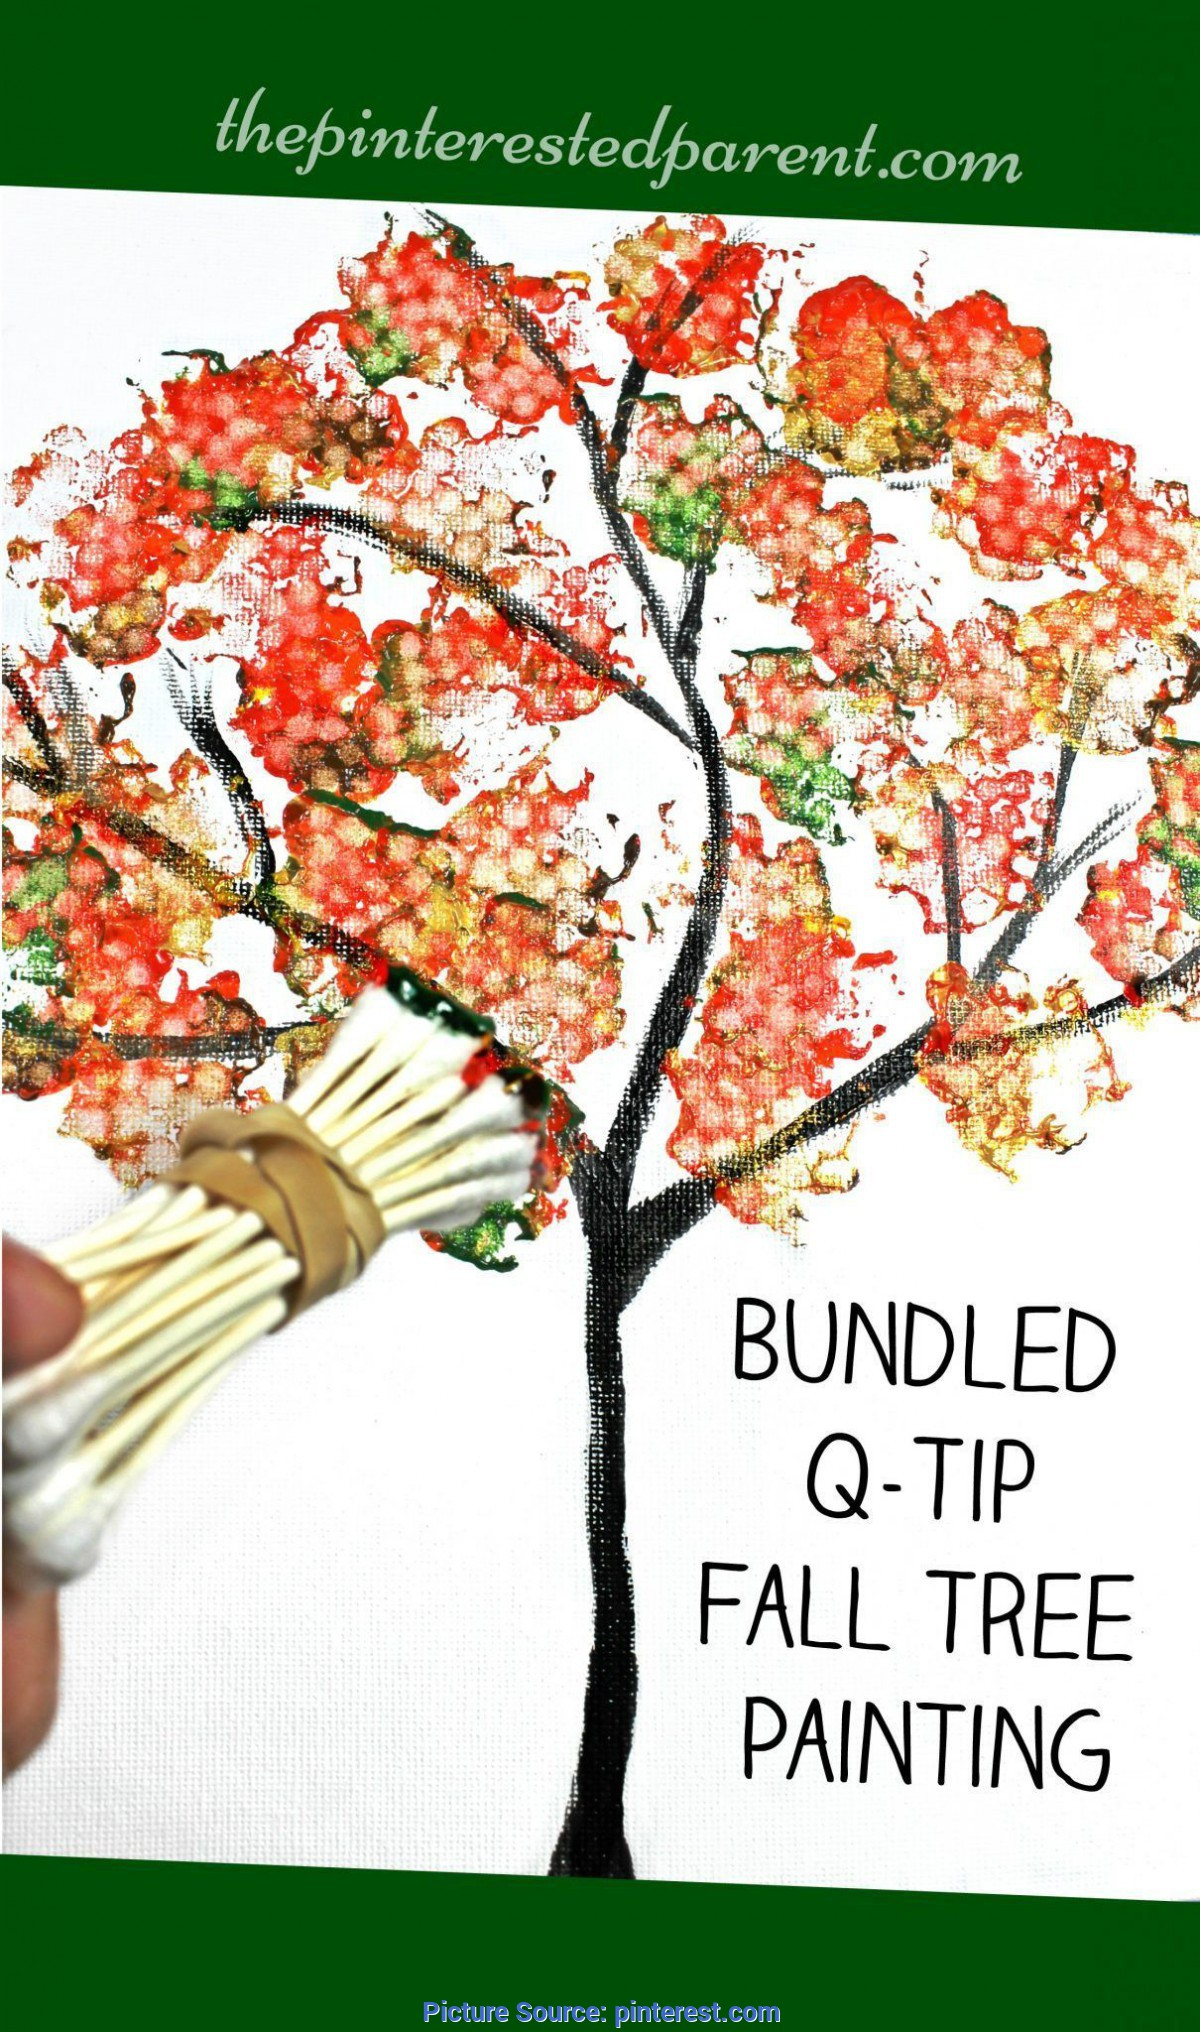 Briliant Fall Painting Ideas For Toddlers Easy Bundled Q Tip Stamped Tree Paintings For Every Season Winte Ota Tech